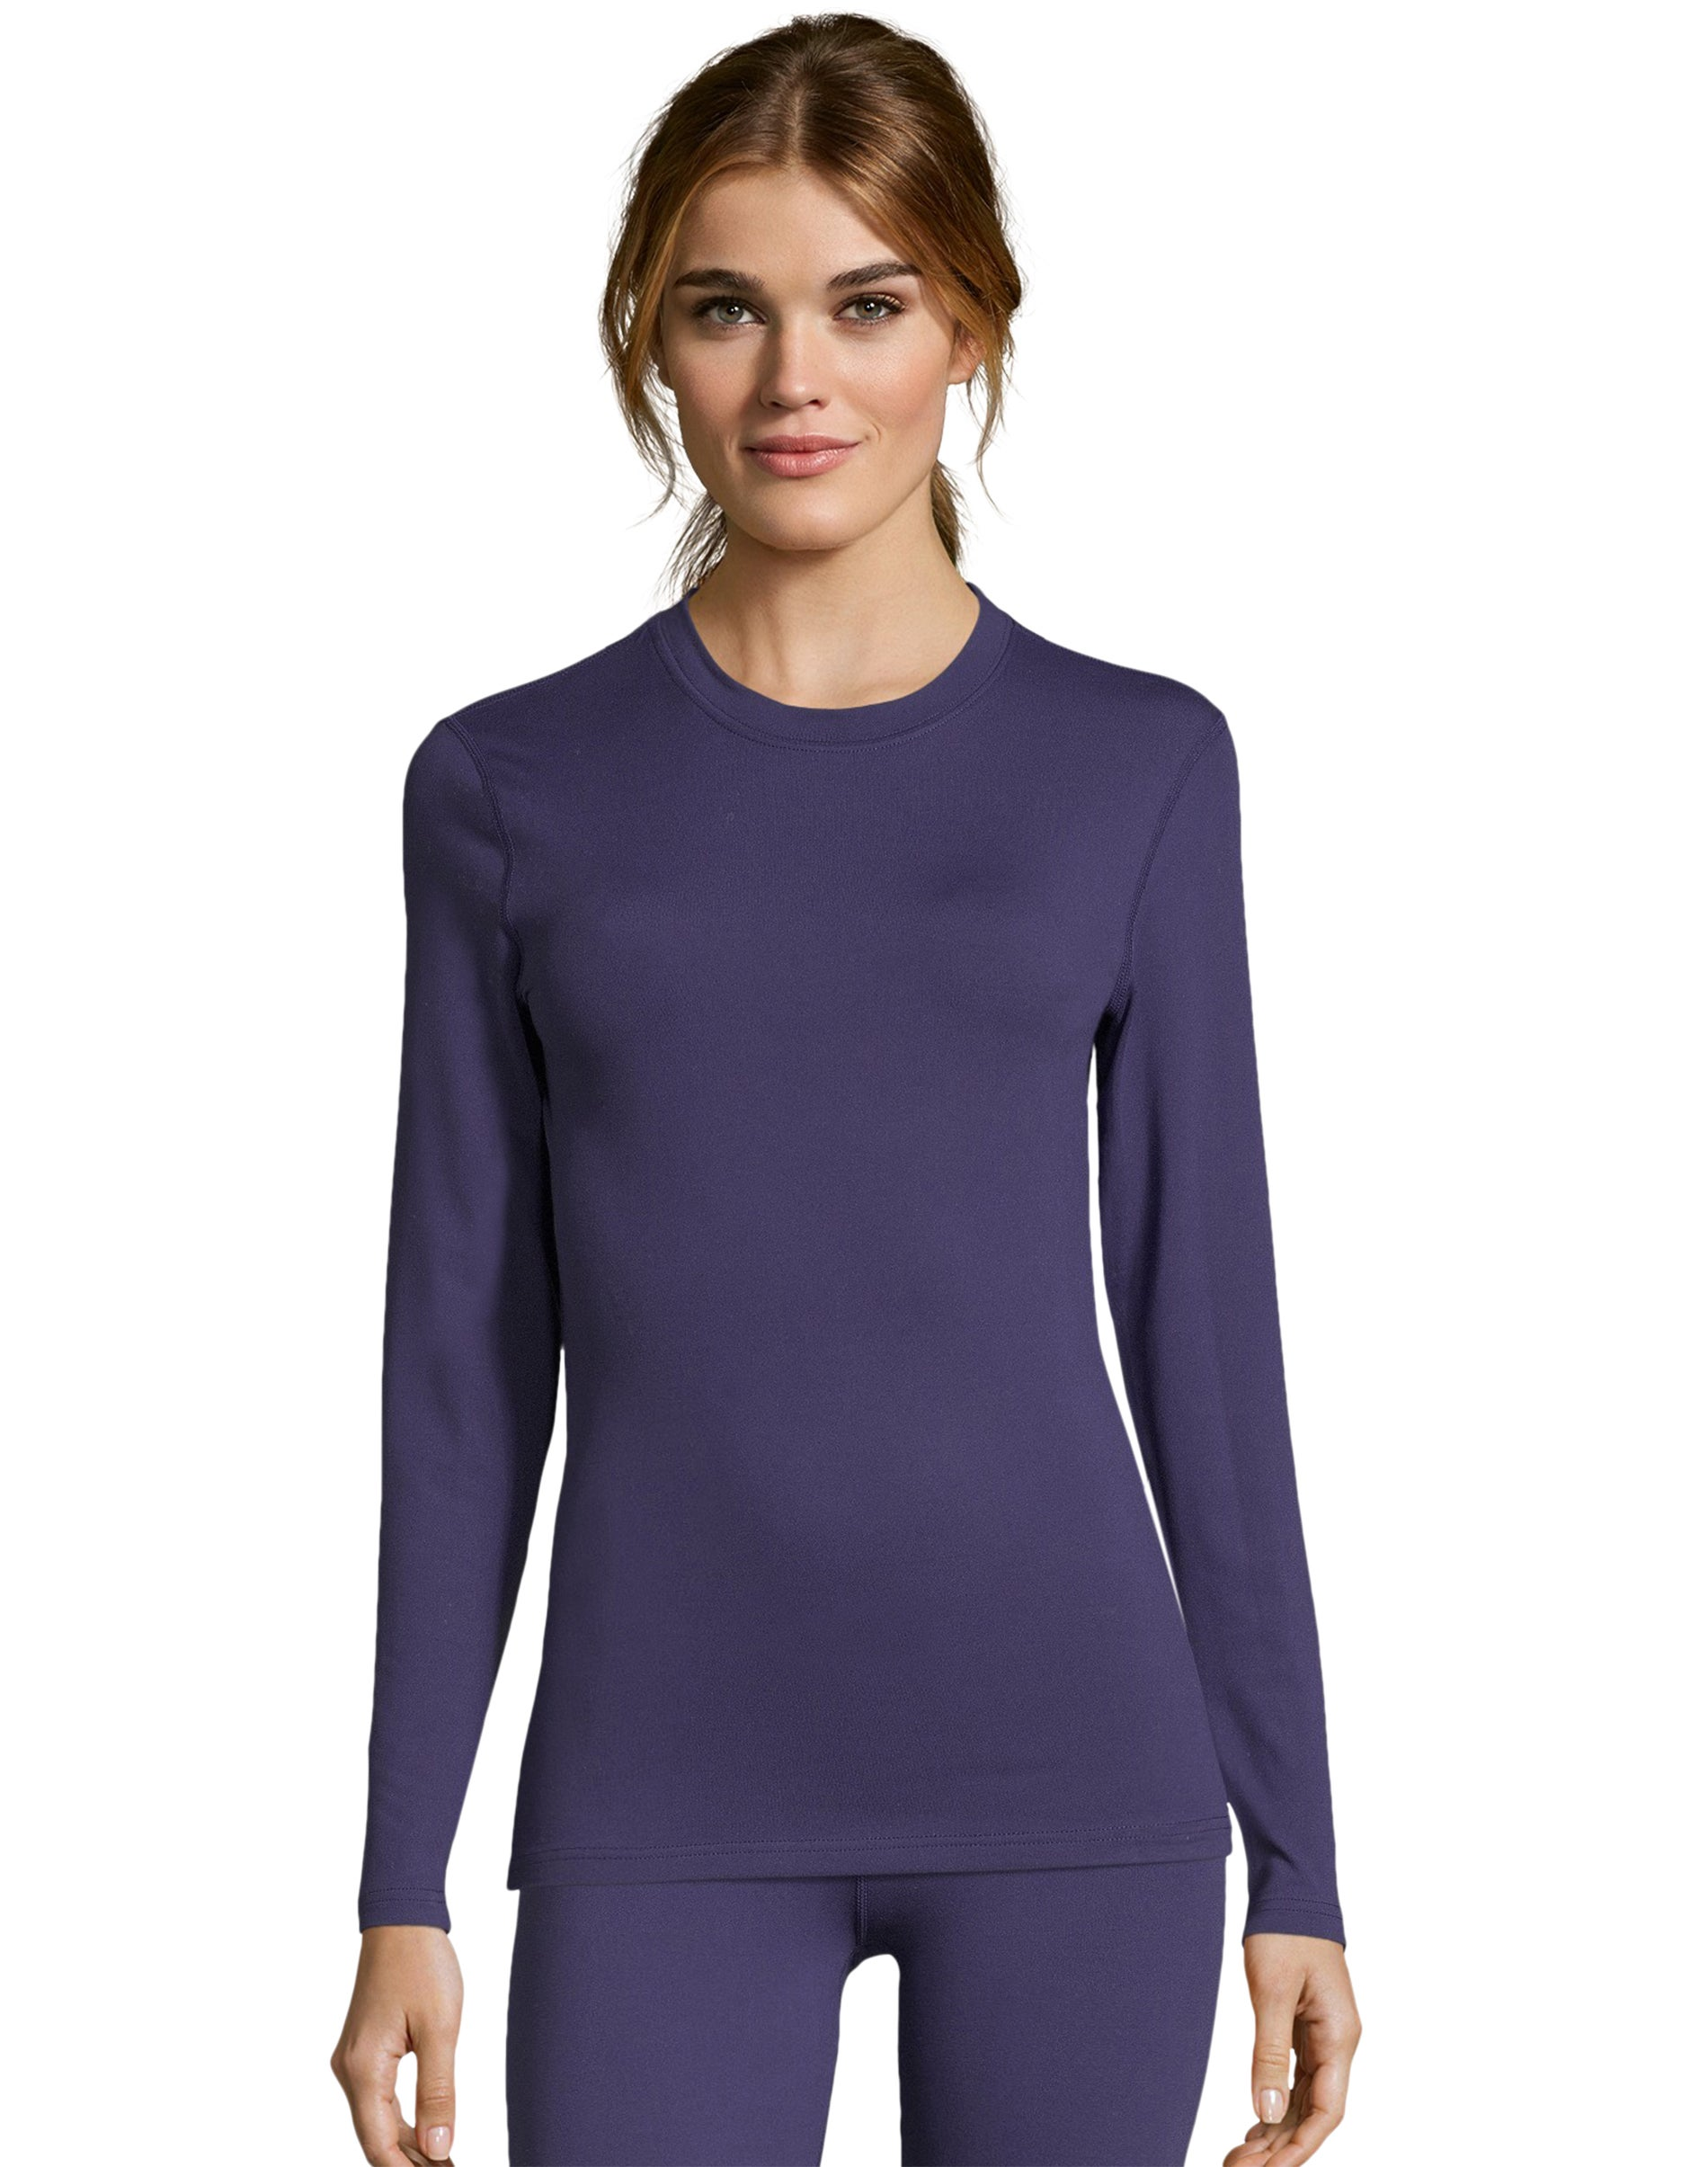 Hanes Womens Thermal Crewneck Solid Color Fusion stretch Soft Baselayer Warm